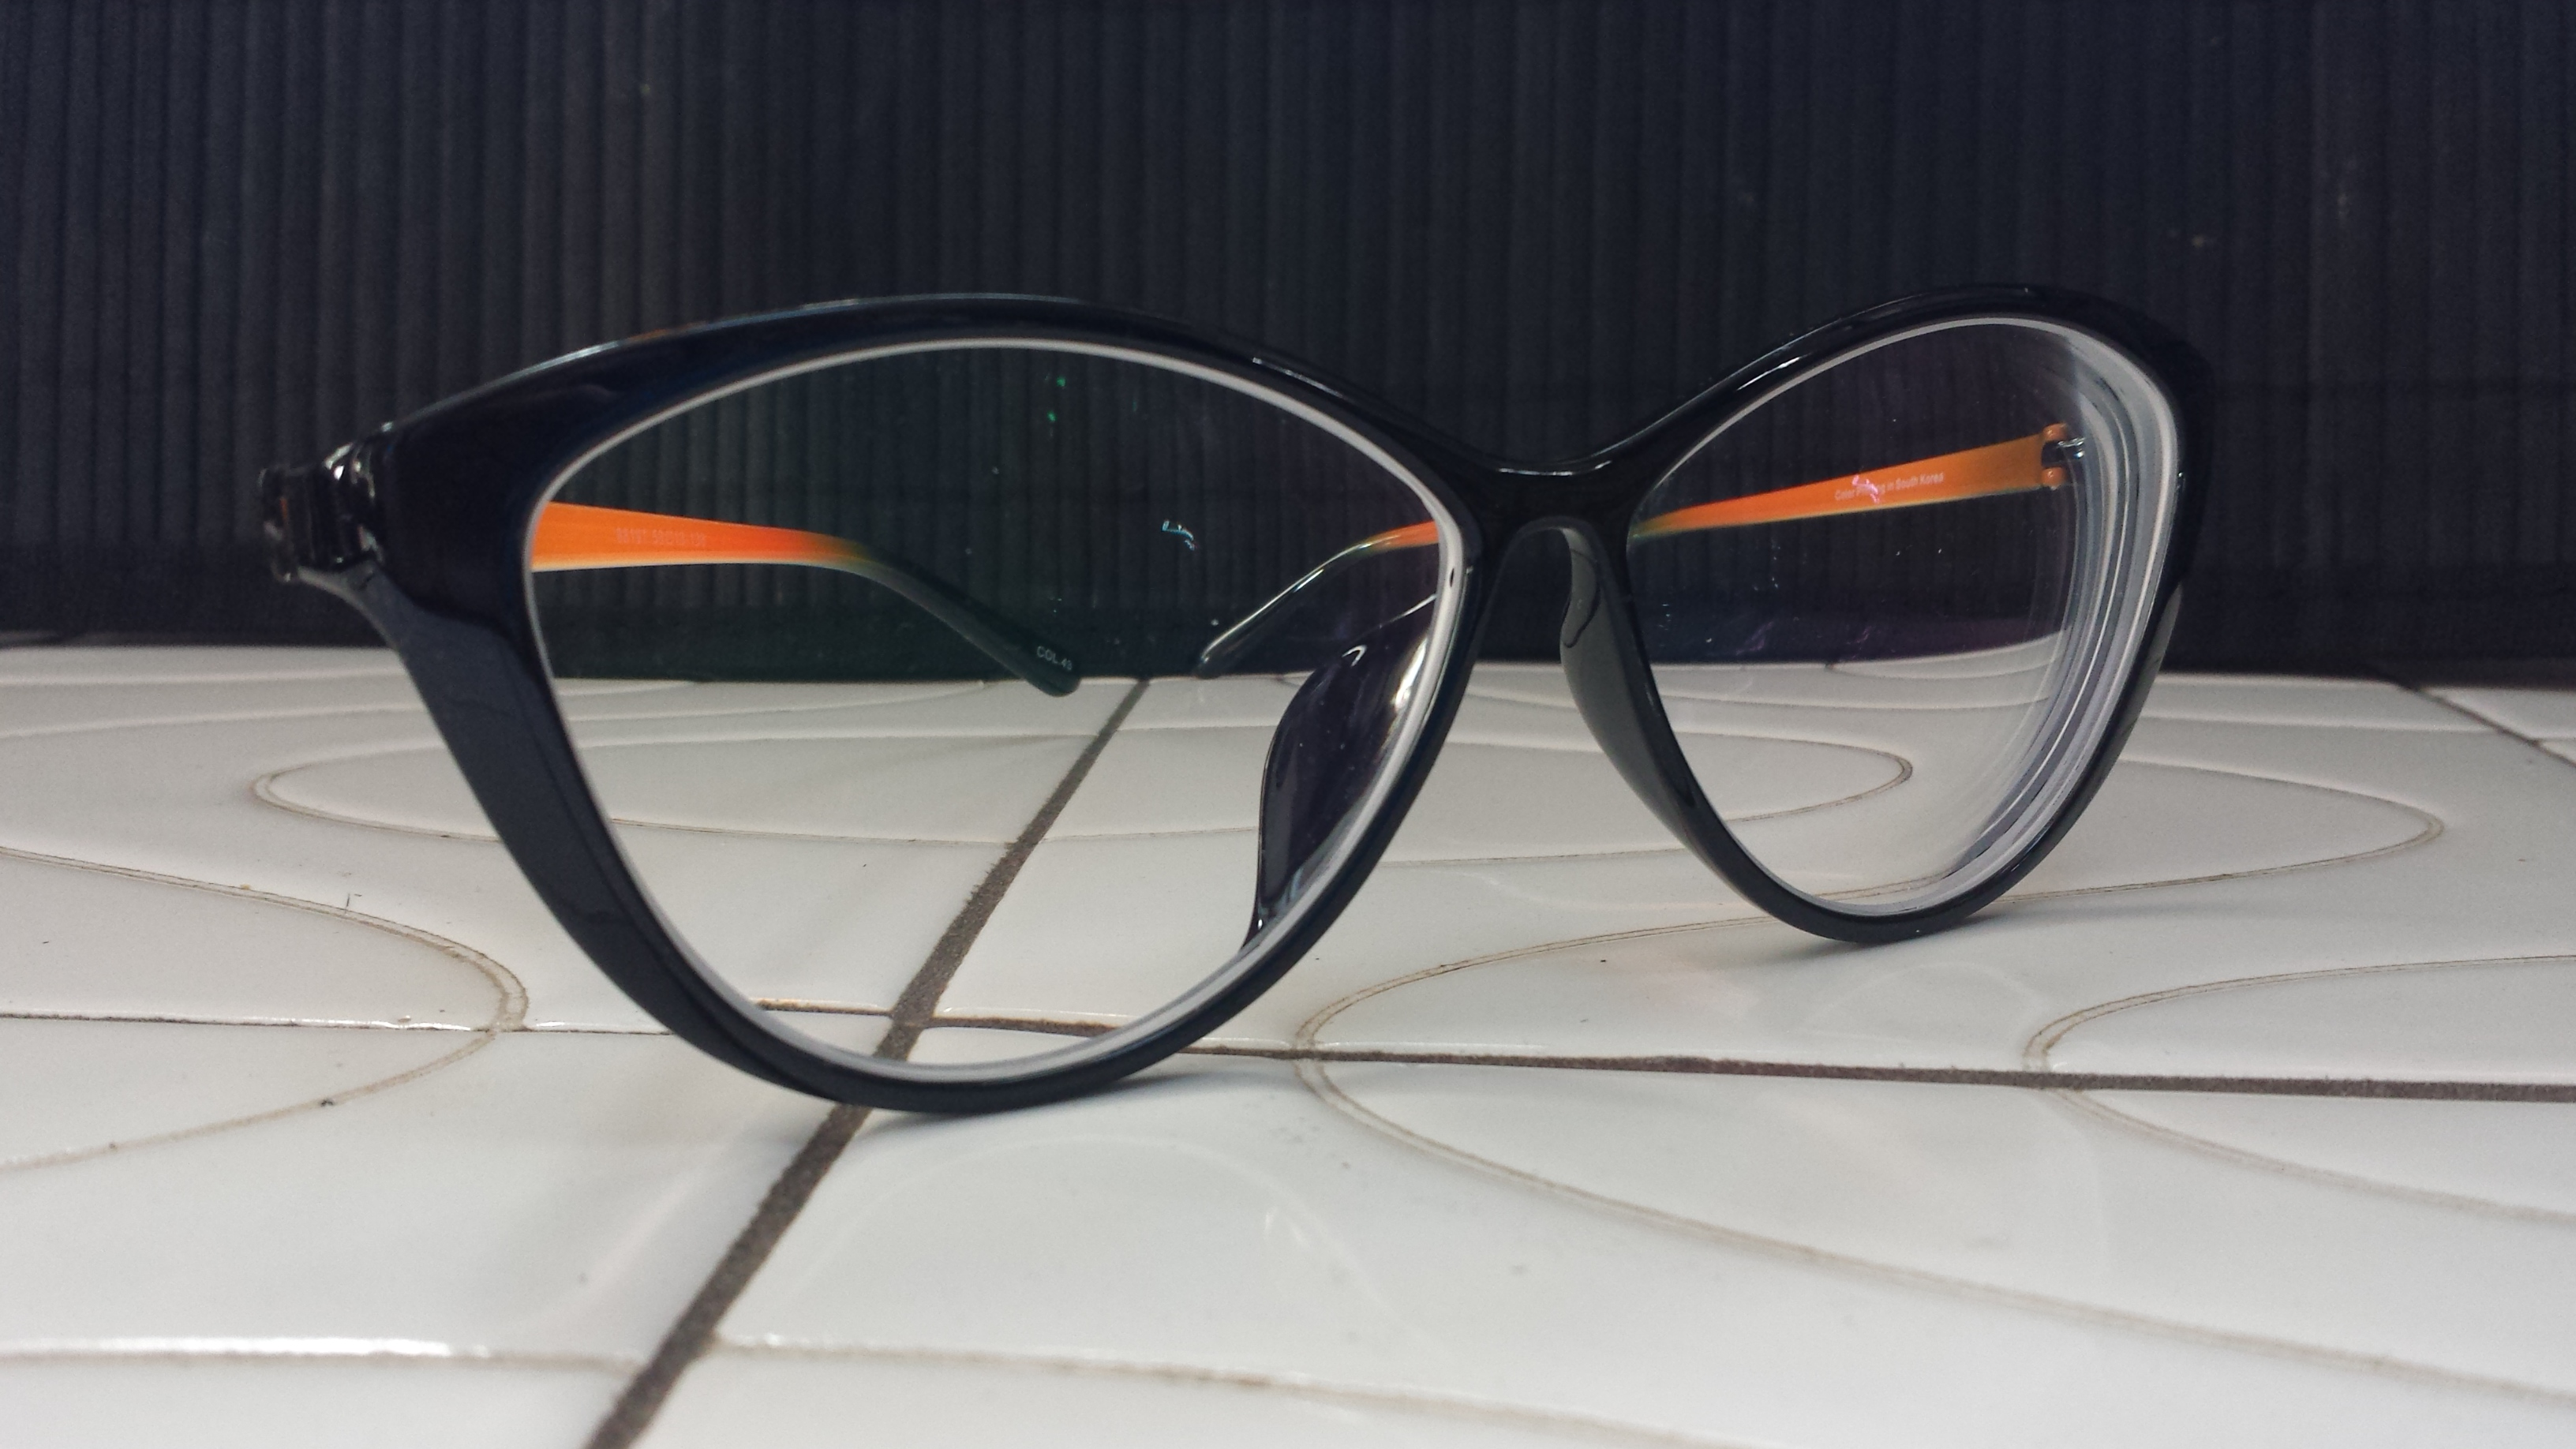 Cateye Prescription Frames - Trendy Glasses